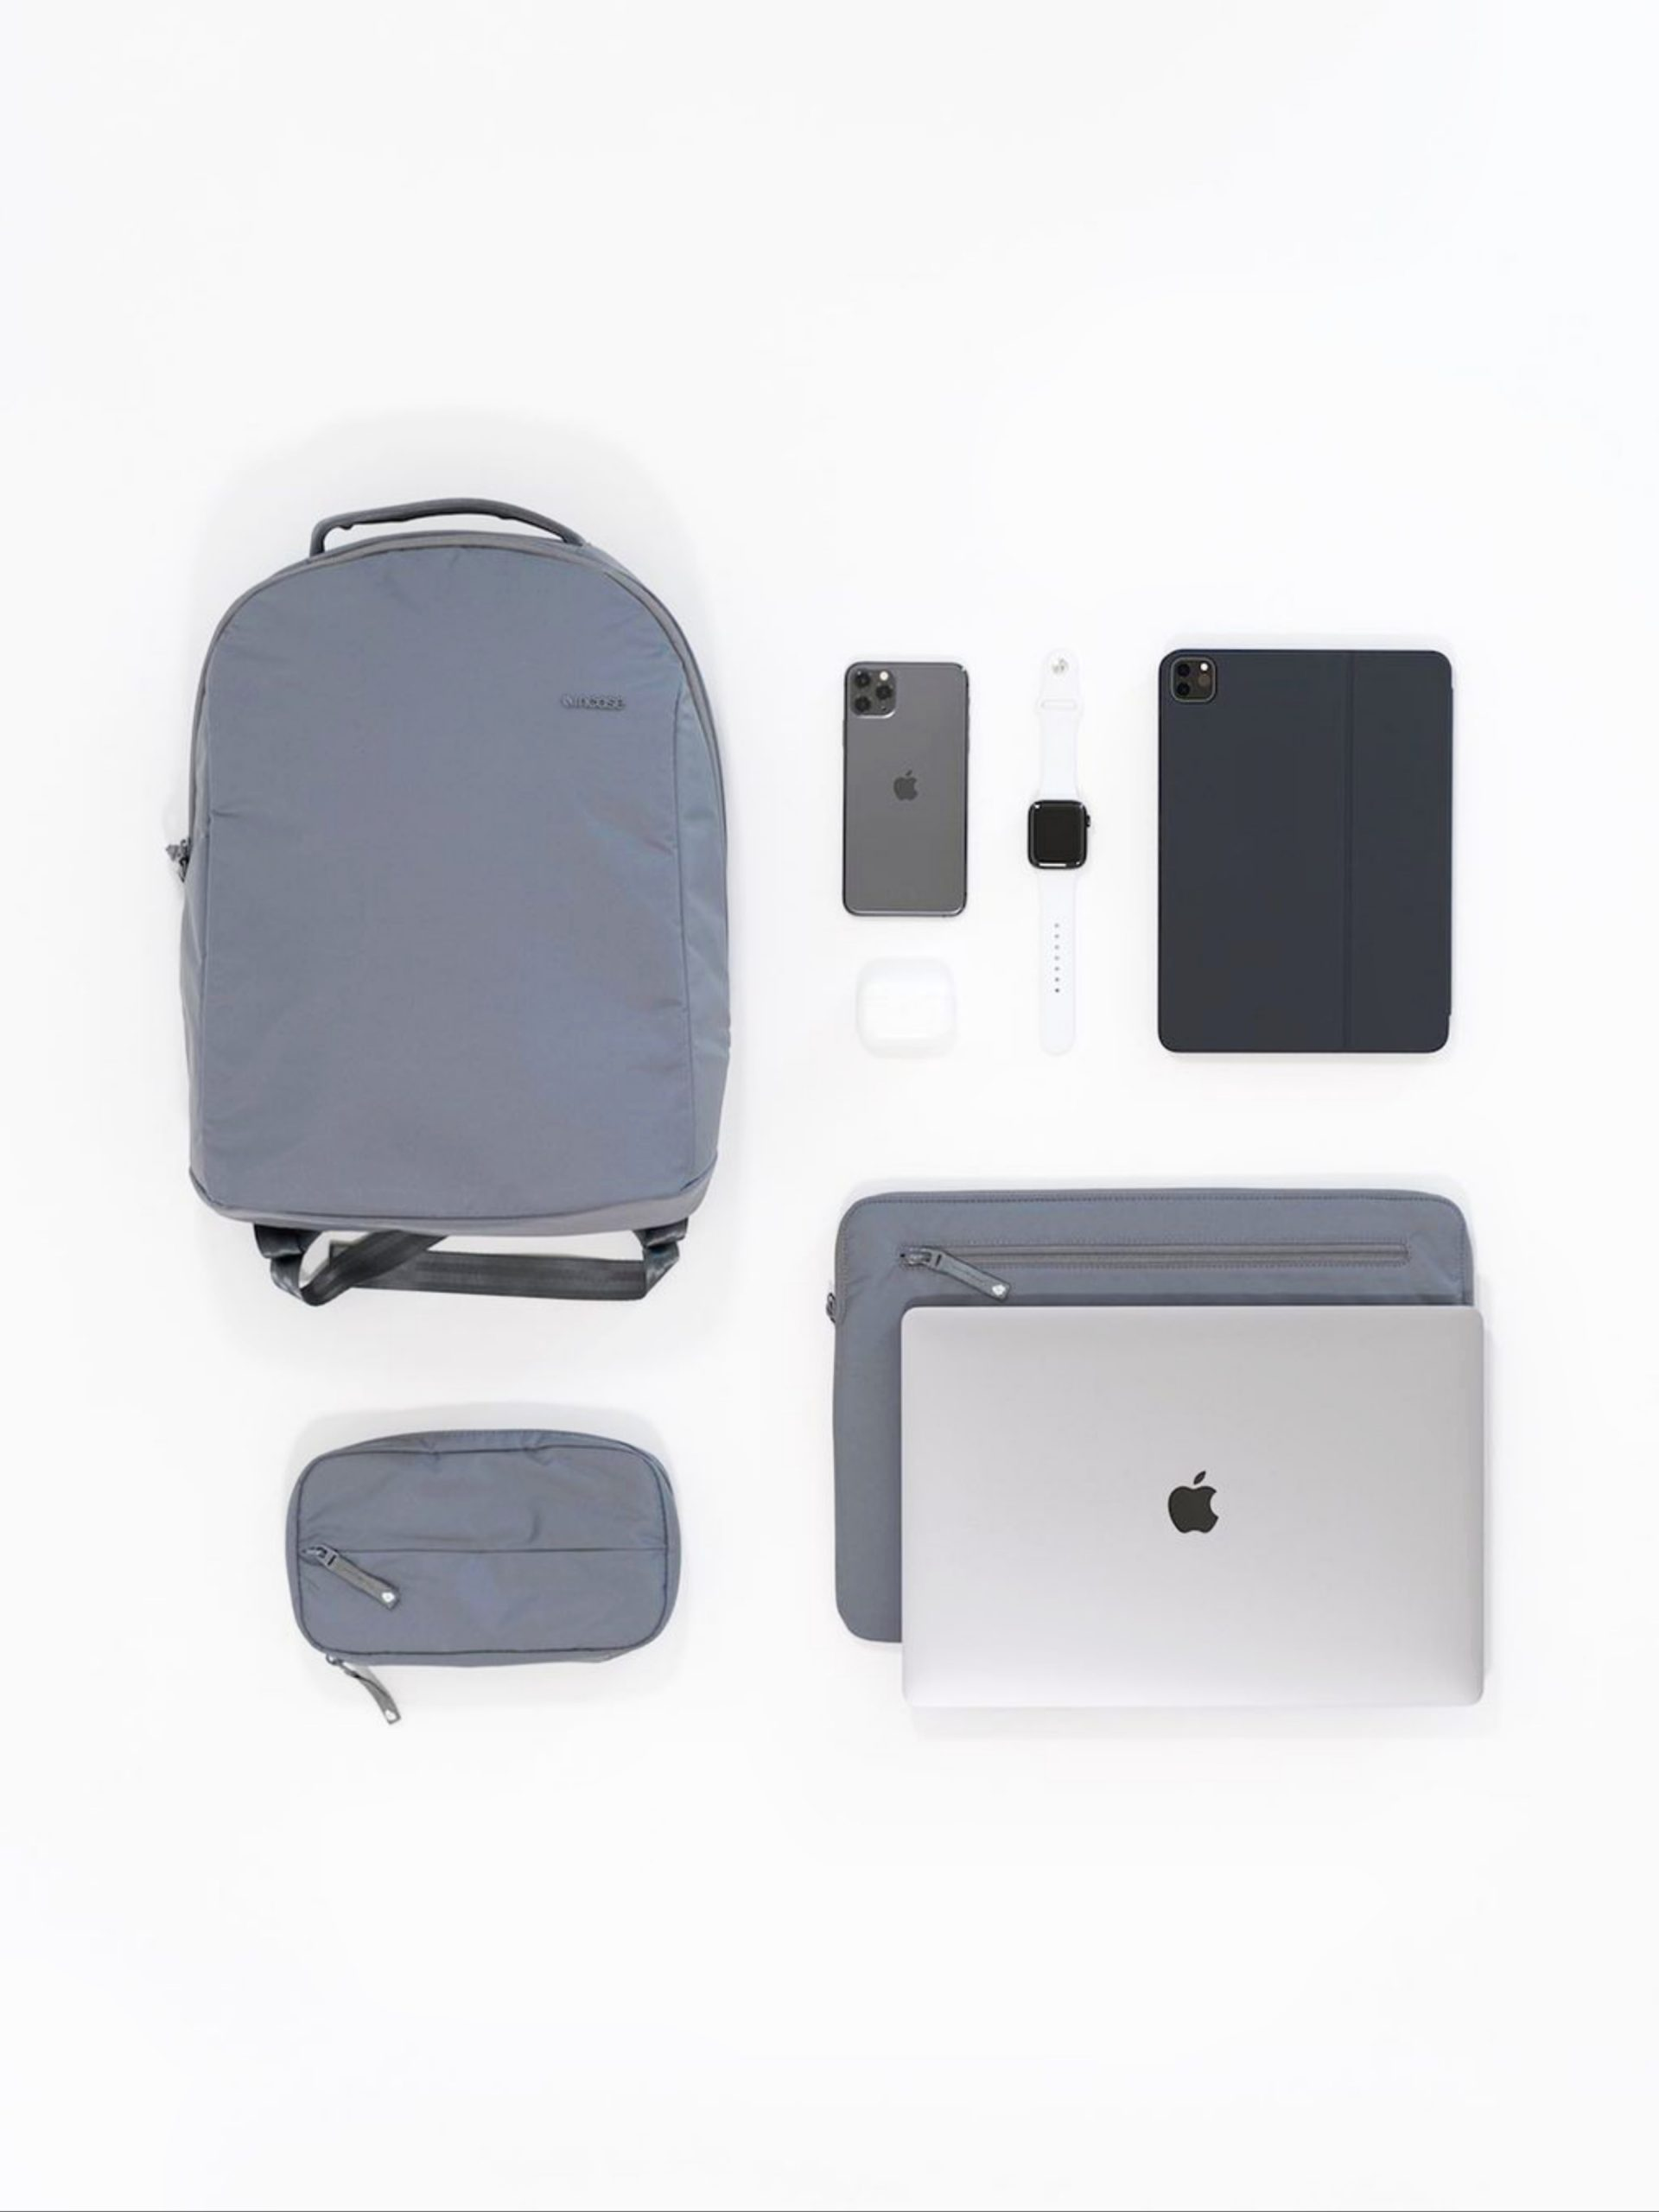 Apple laptop and bags